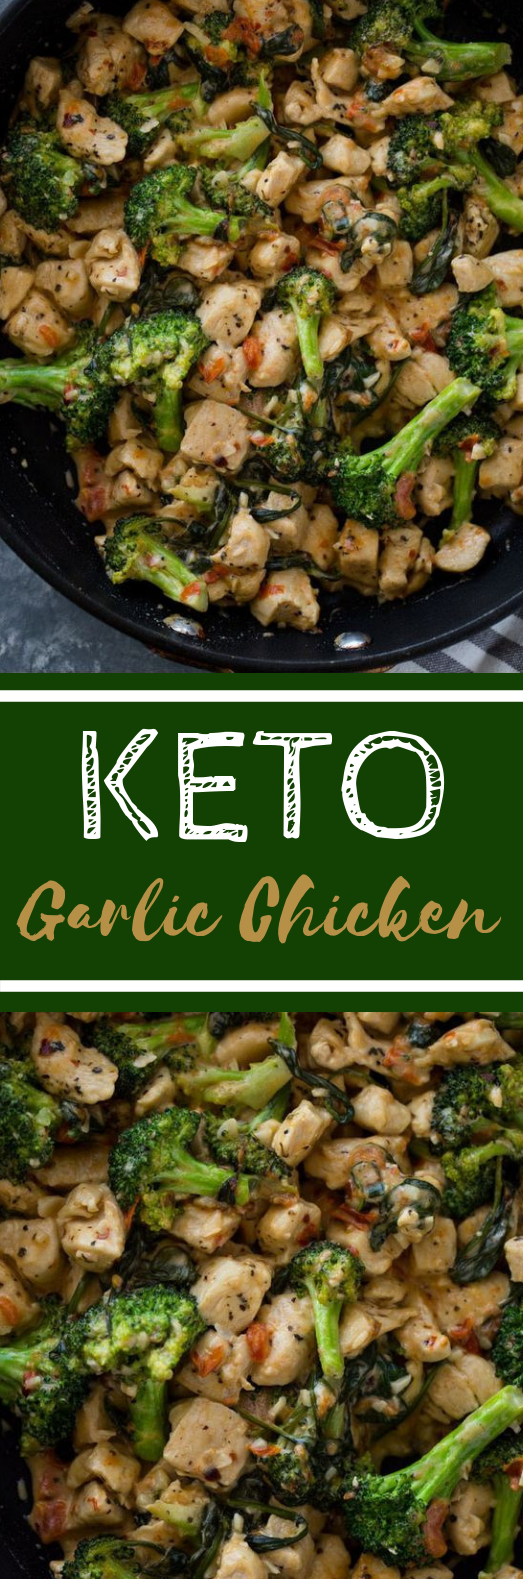 15 Minute Keto Garlic Chicken with Broccoli and Spinach #healthy #paleo